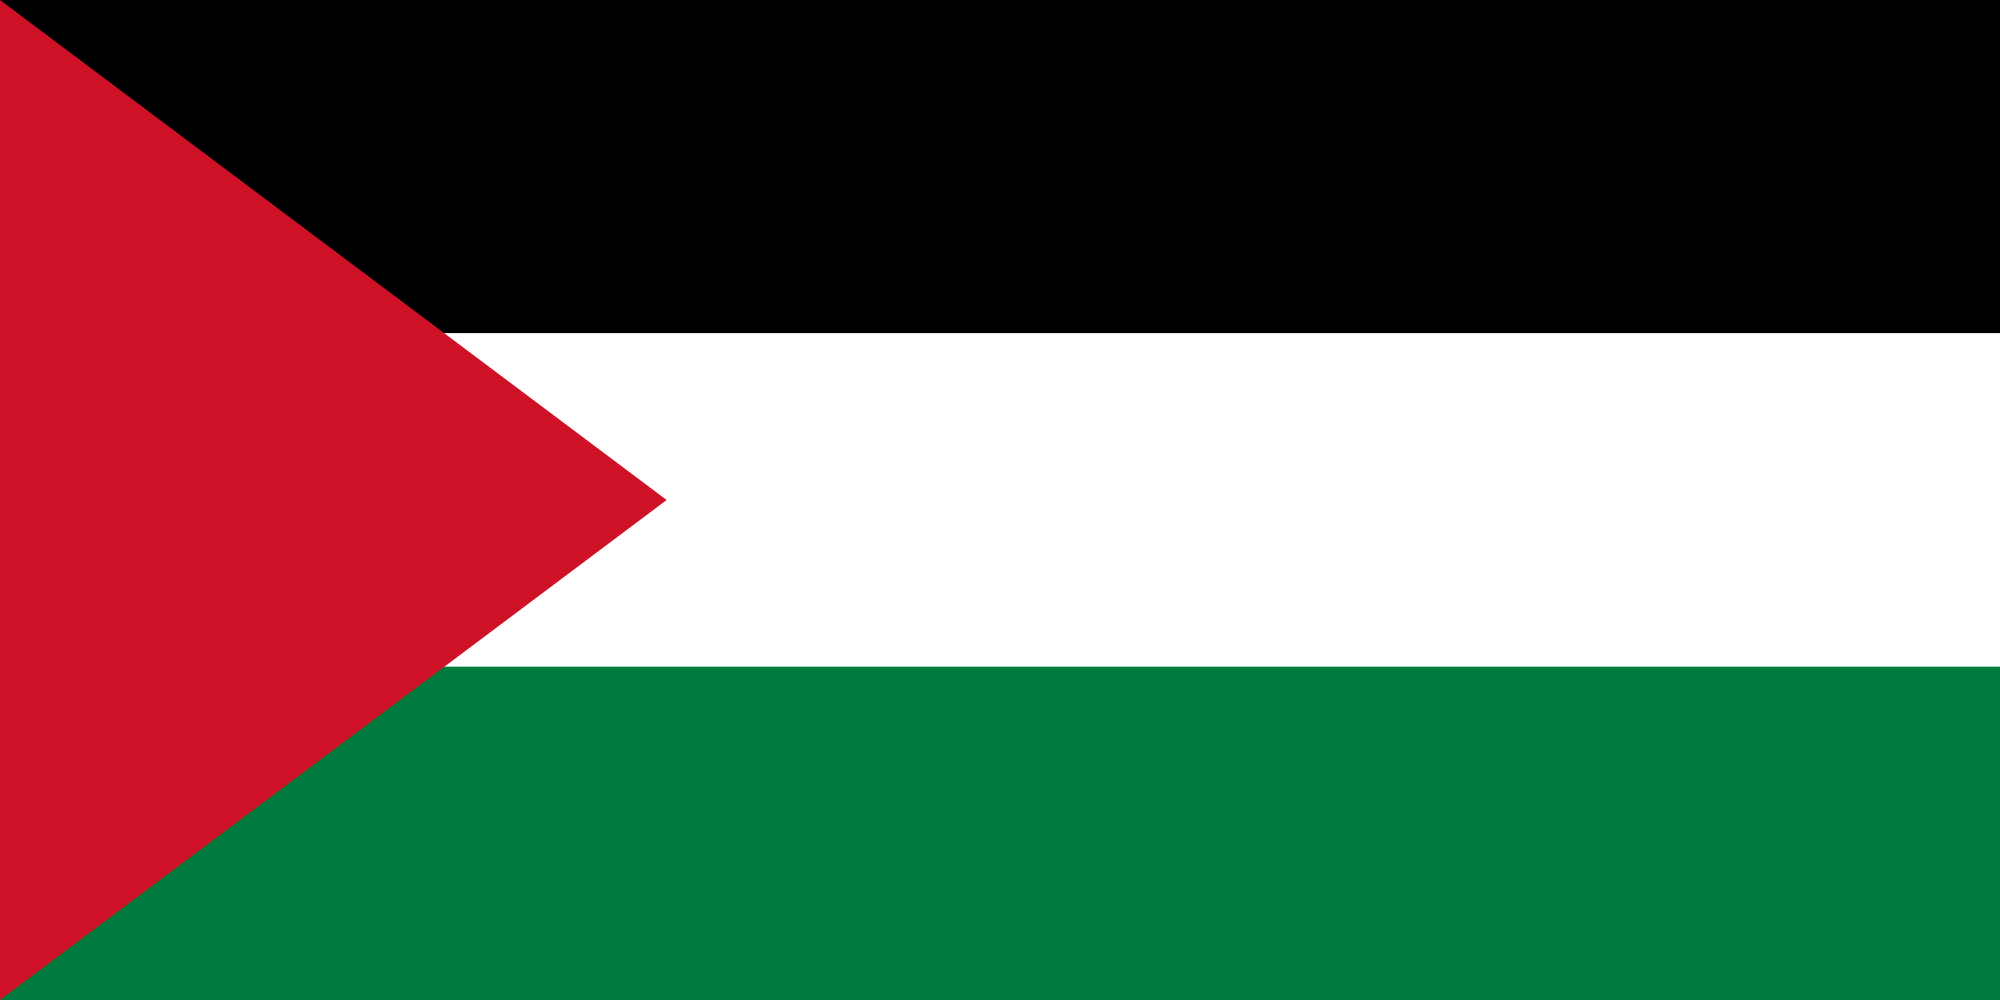 Palestinian Flags (Palestine) from The World Flag Database